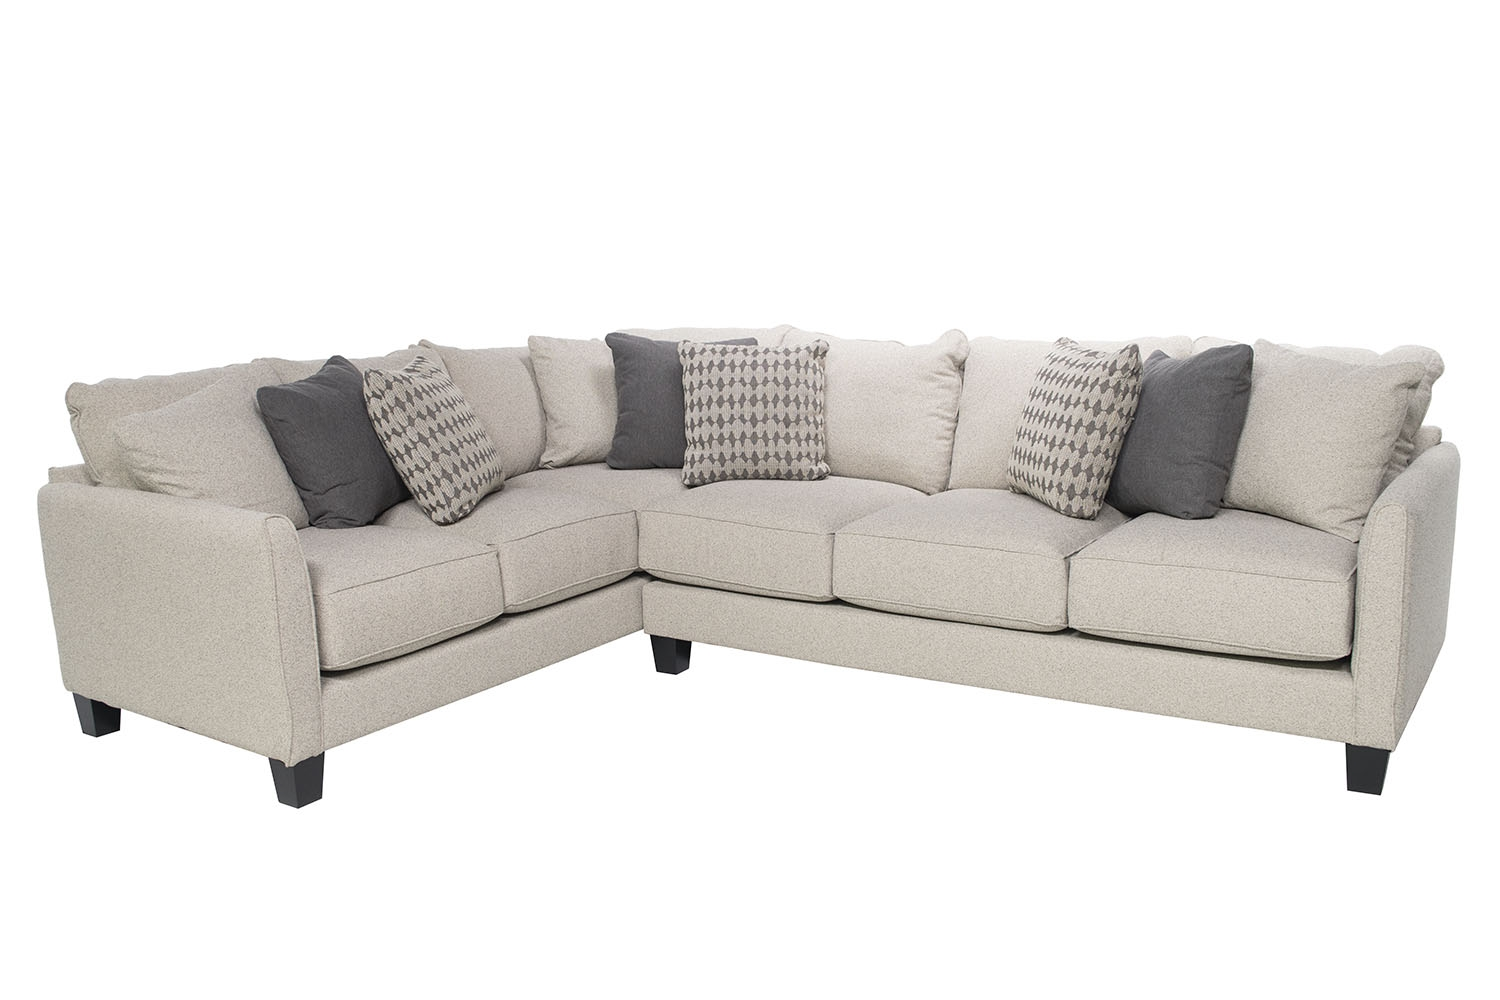 Sectional Couches & Sofas | Mor Furniture